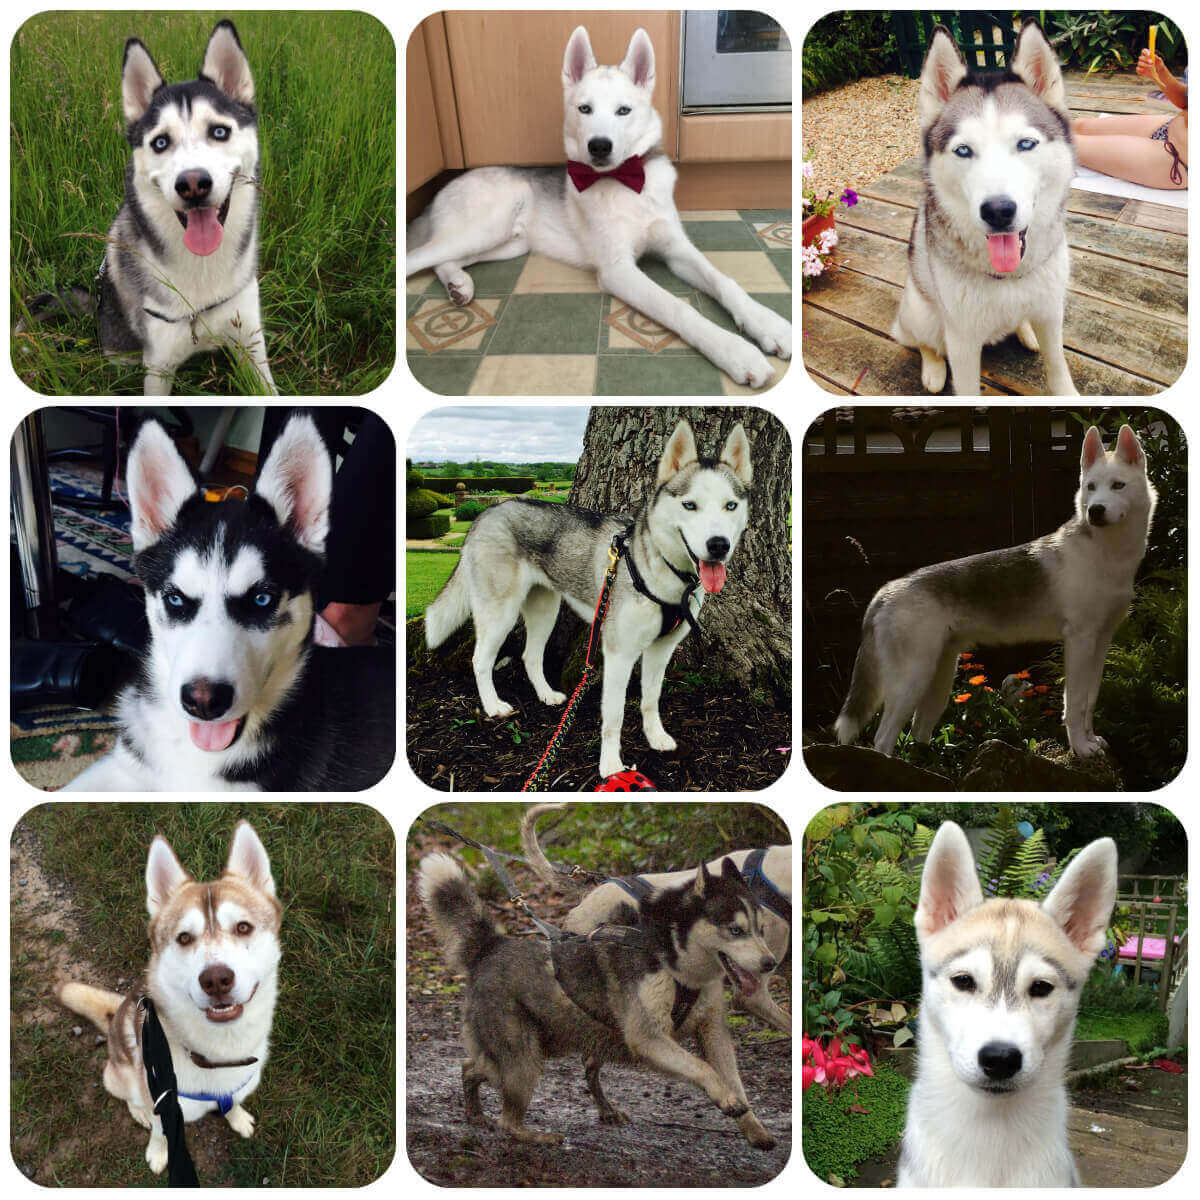 A collage of husky dogs and puppies, part of BorrowMyDoggy's guide to dog breeds.